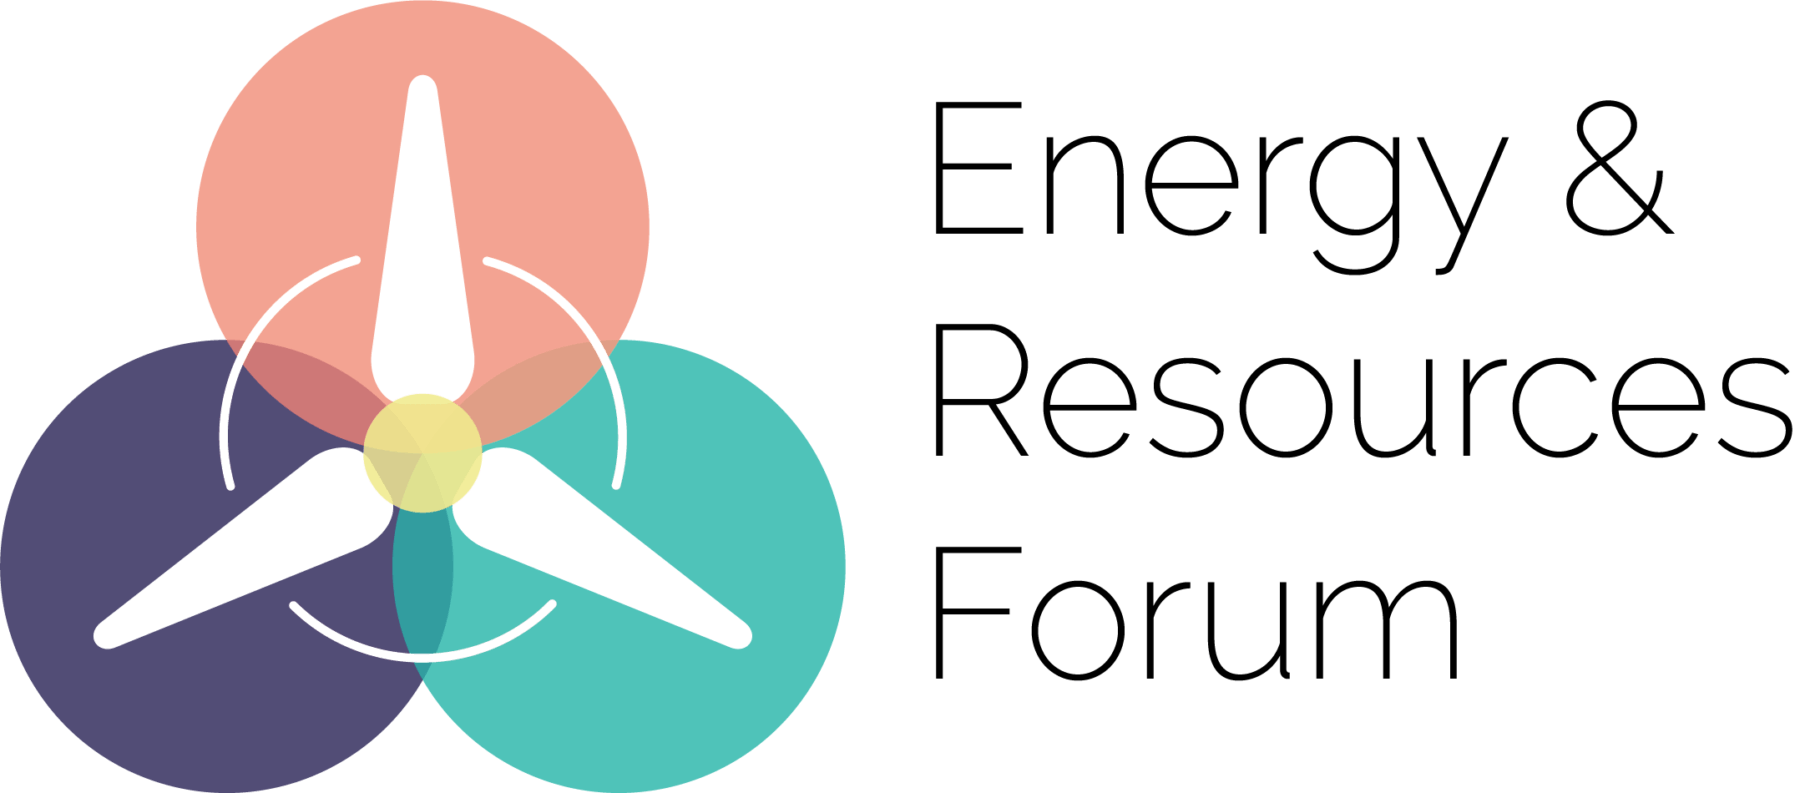 Contact 1 - Energy & Resources Forum 2020 - Zero Emission Group